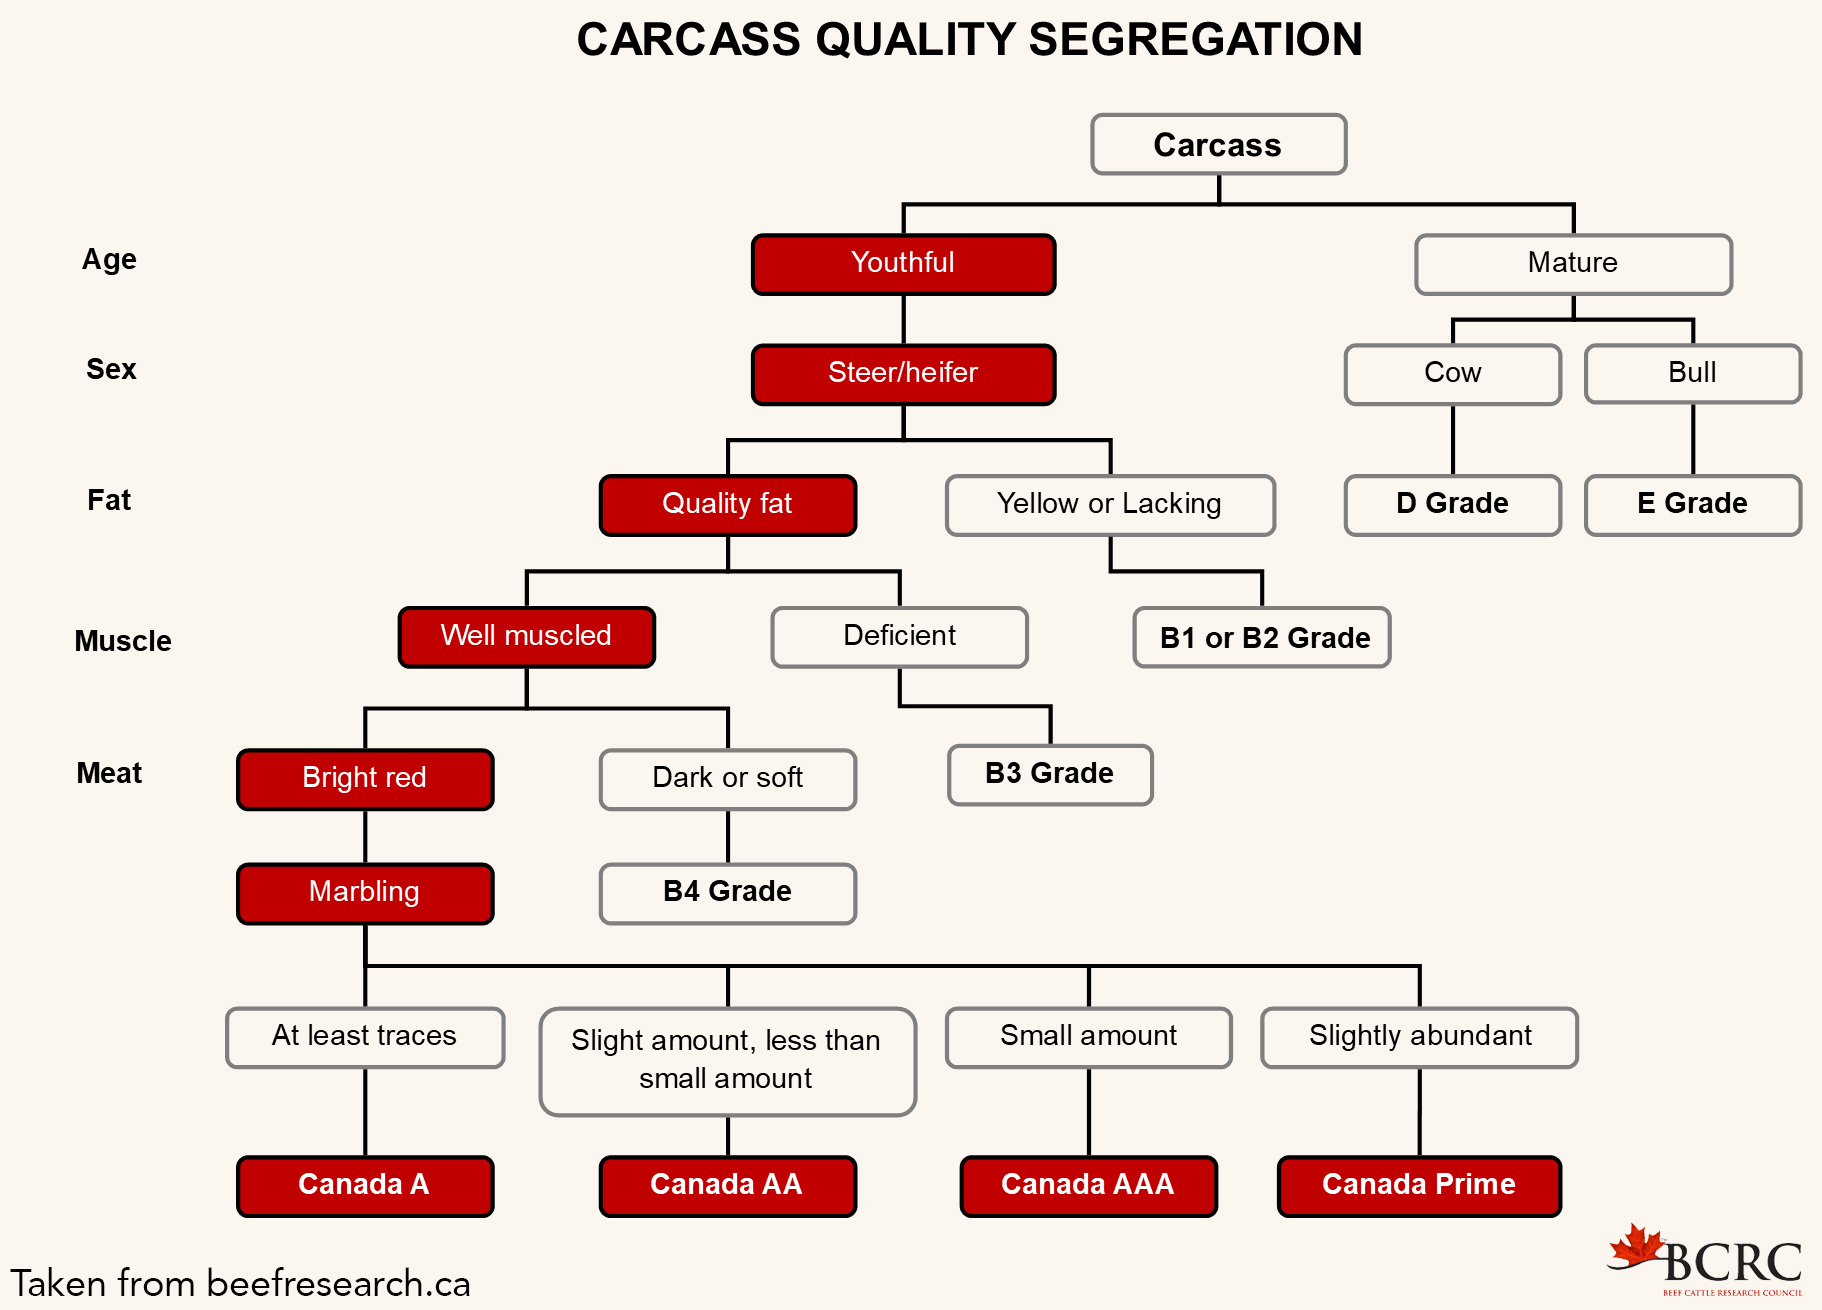 Beef Quality Segregation chart from Summit Meats